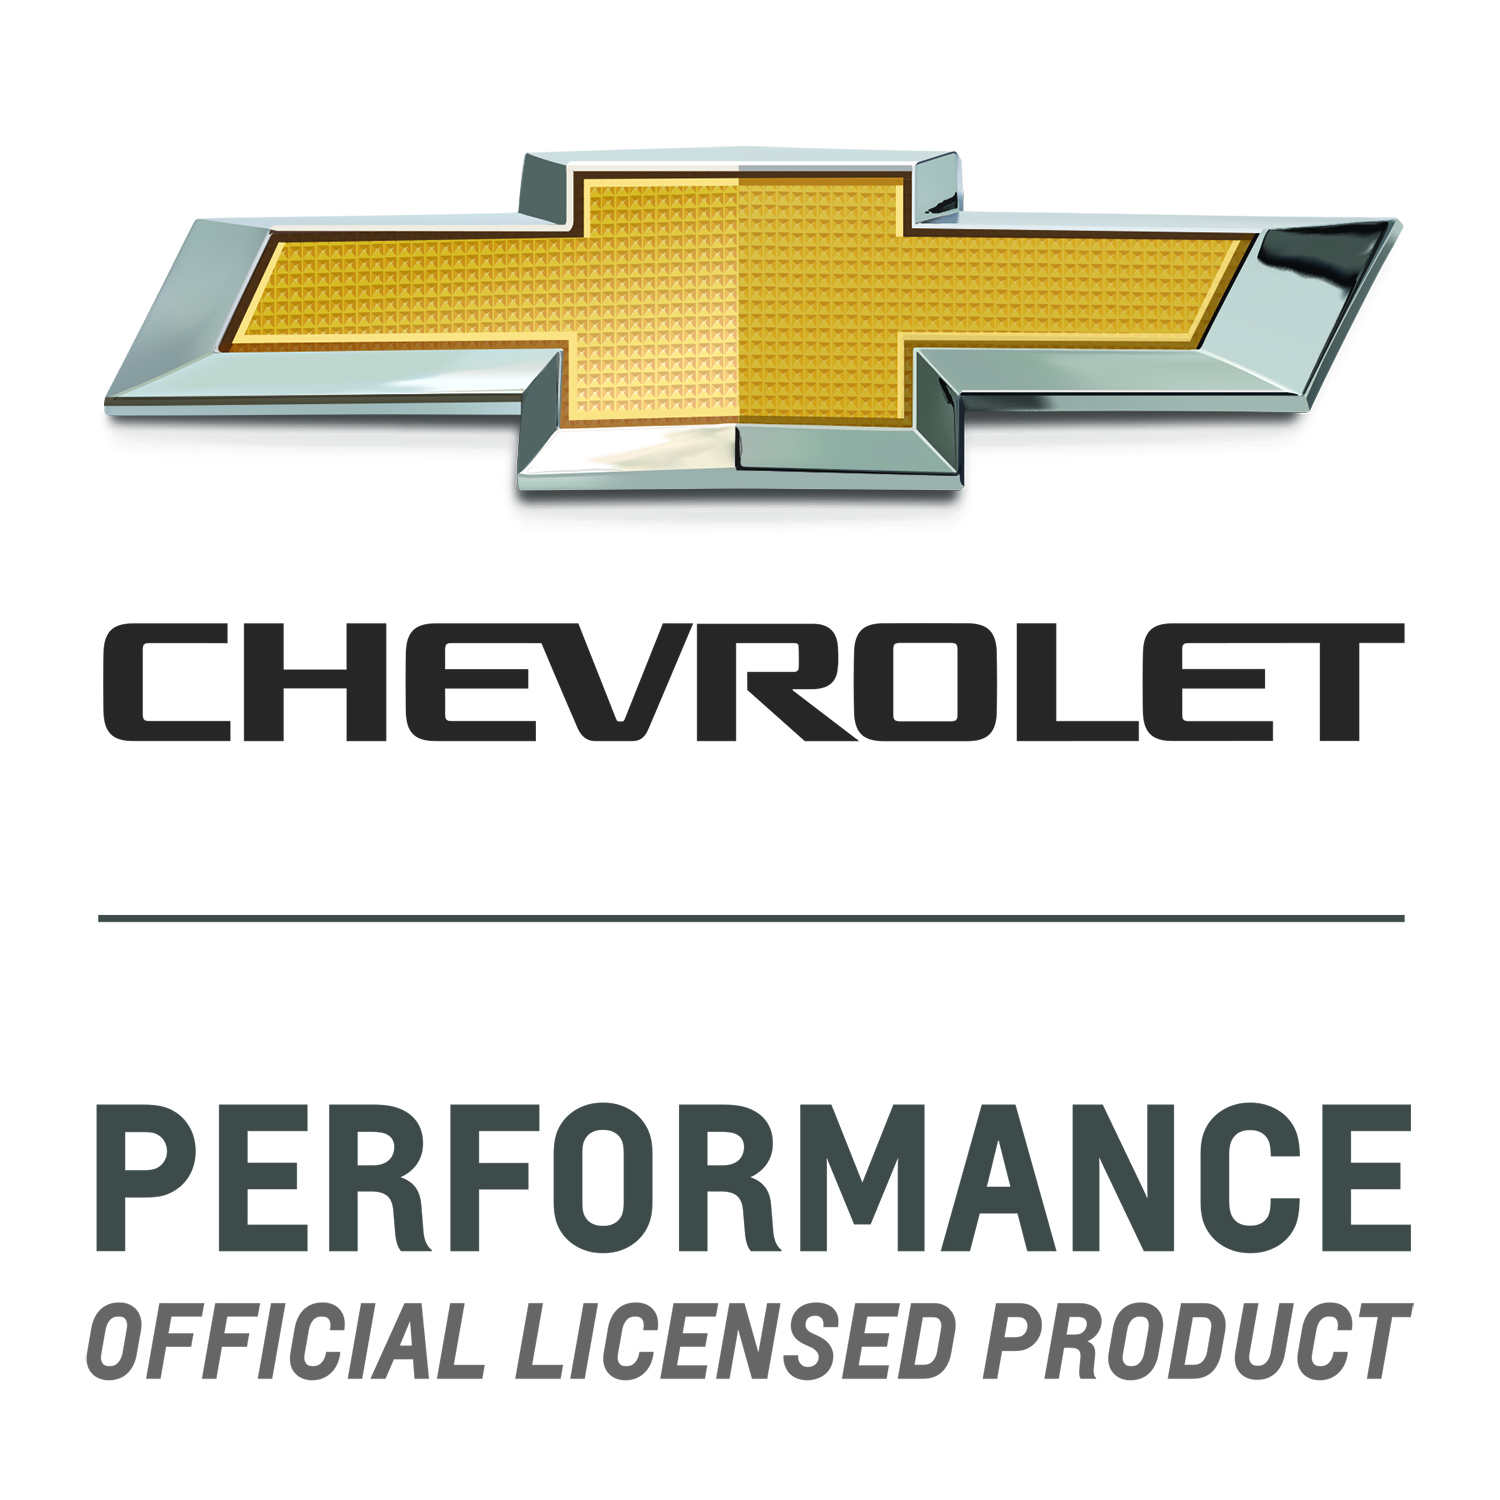 Chevy Official Licensed Product